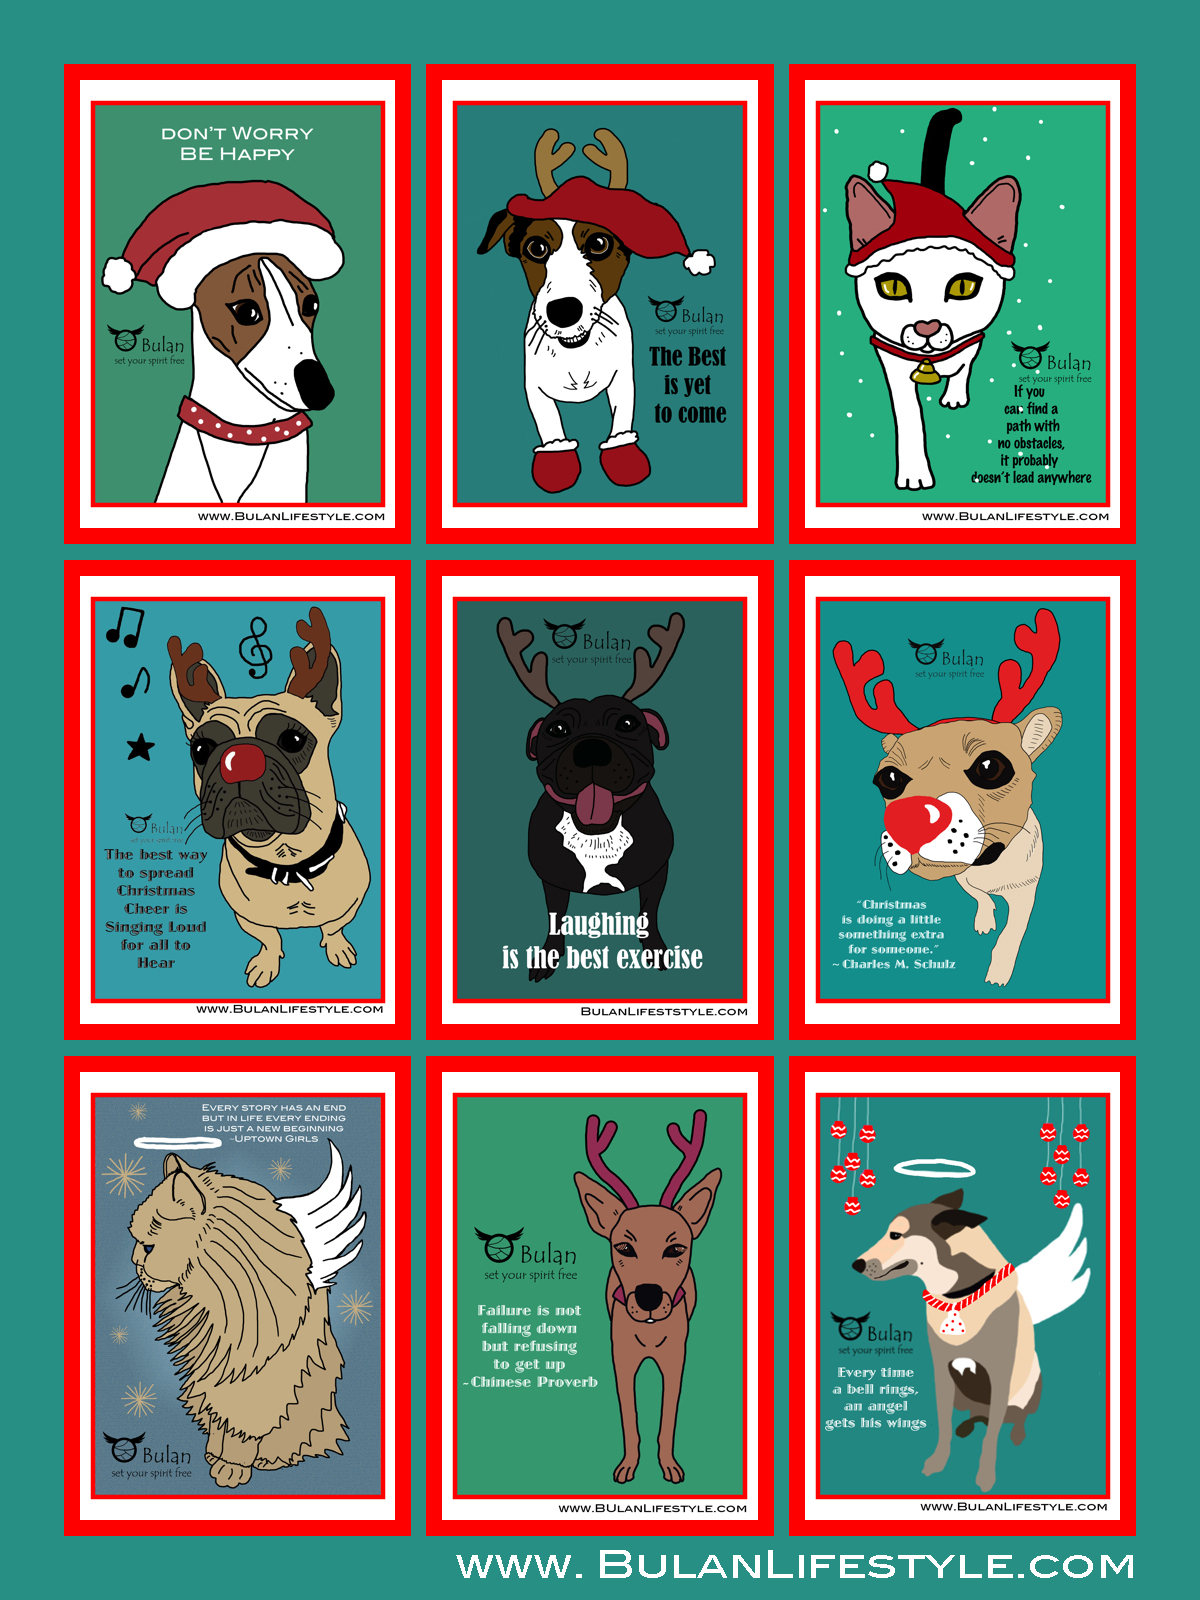 A Big Christmas Wish From All The Animals Xoxo Bulanlifestyle